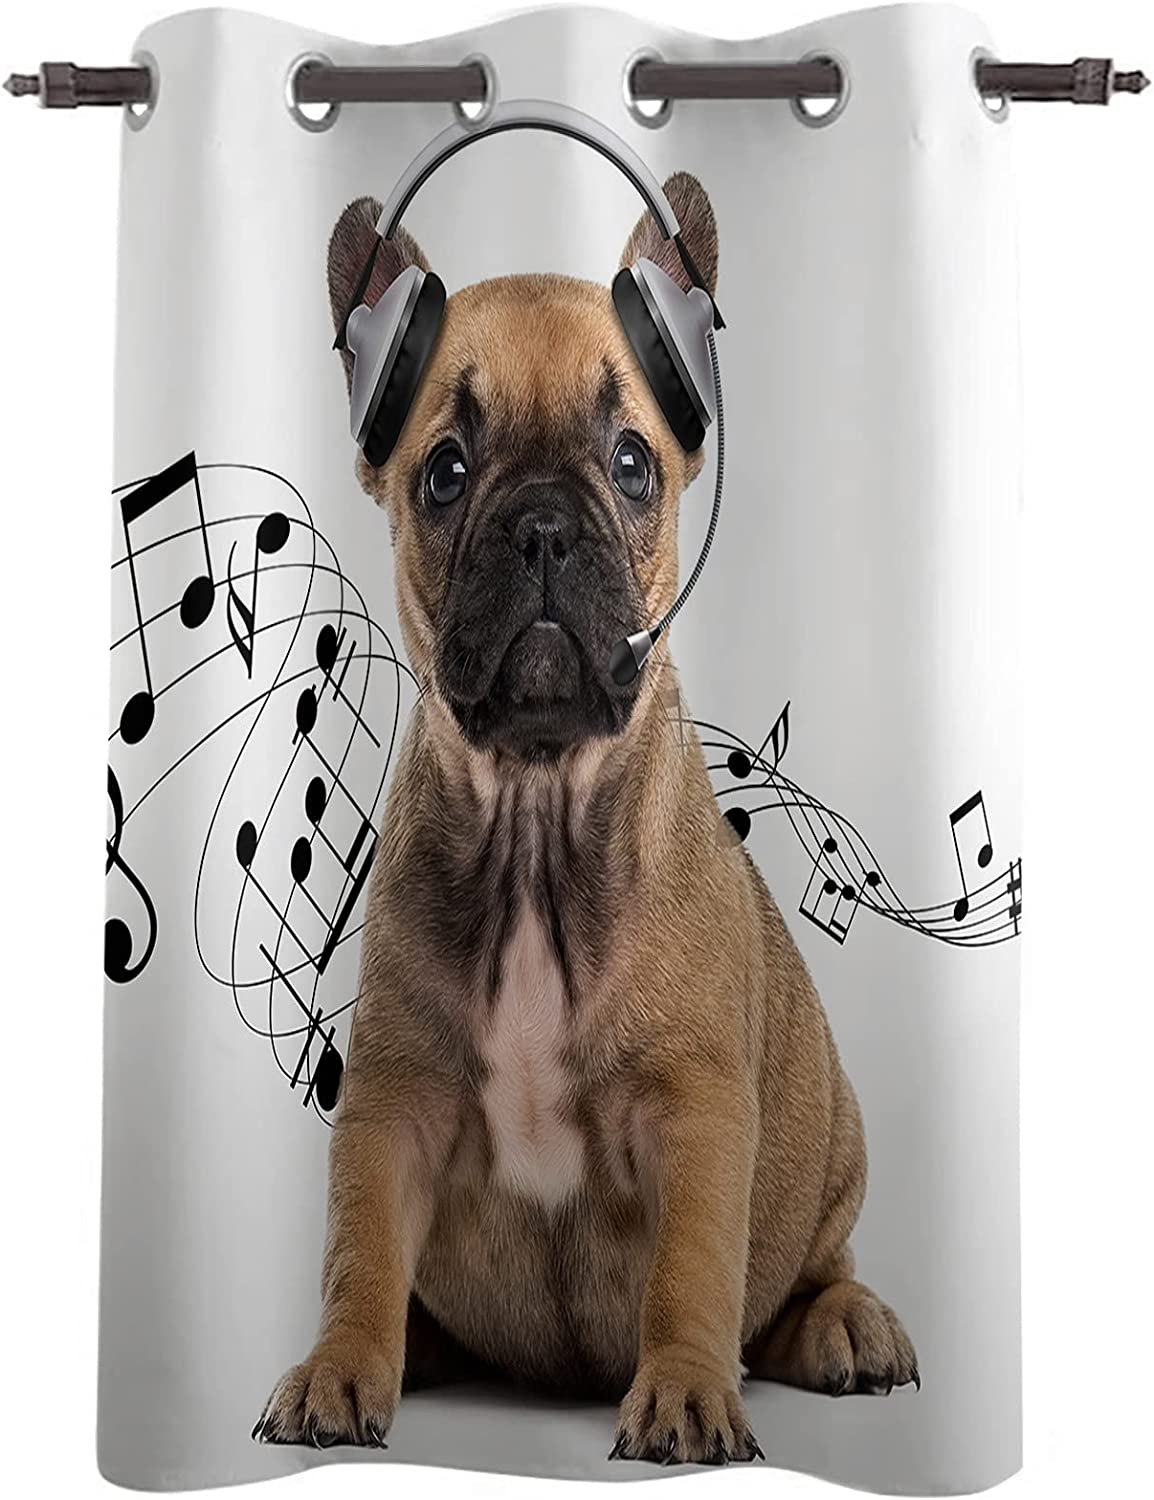 Blackout Window Curtain Drapes Funny Pug Wearing Headphones Cheap mail order sales Dog Popular brand